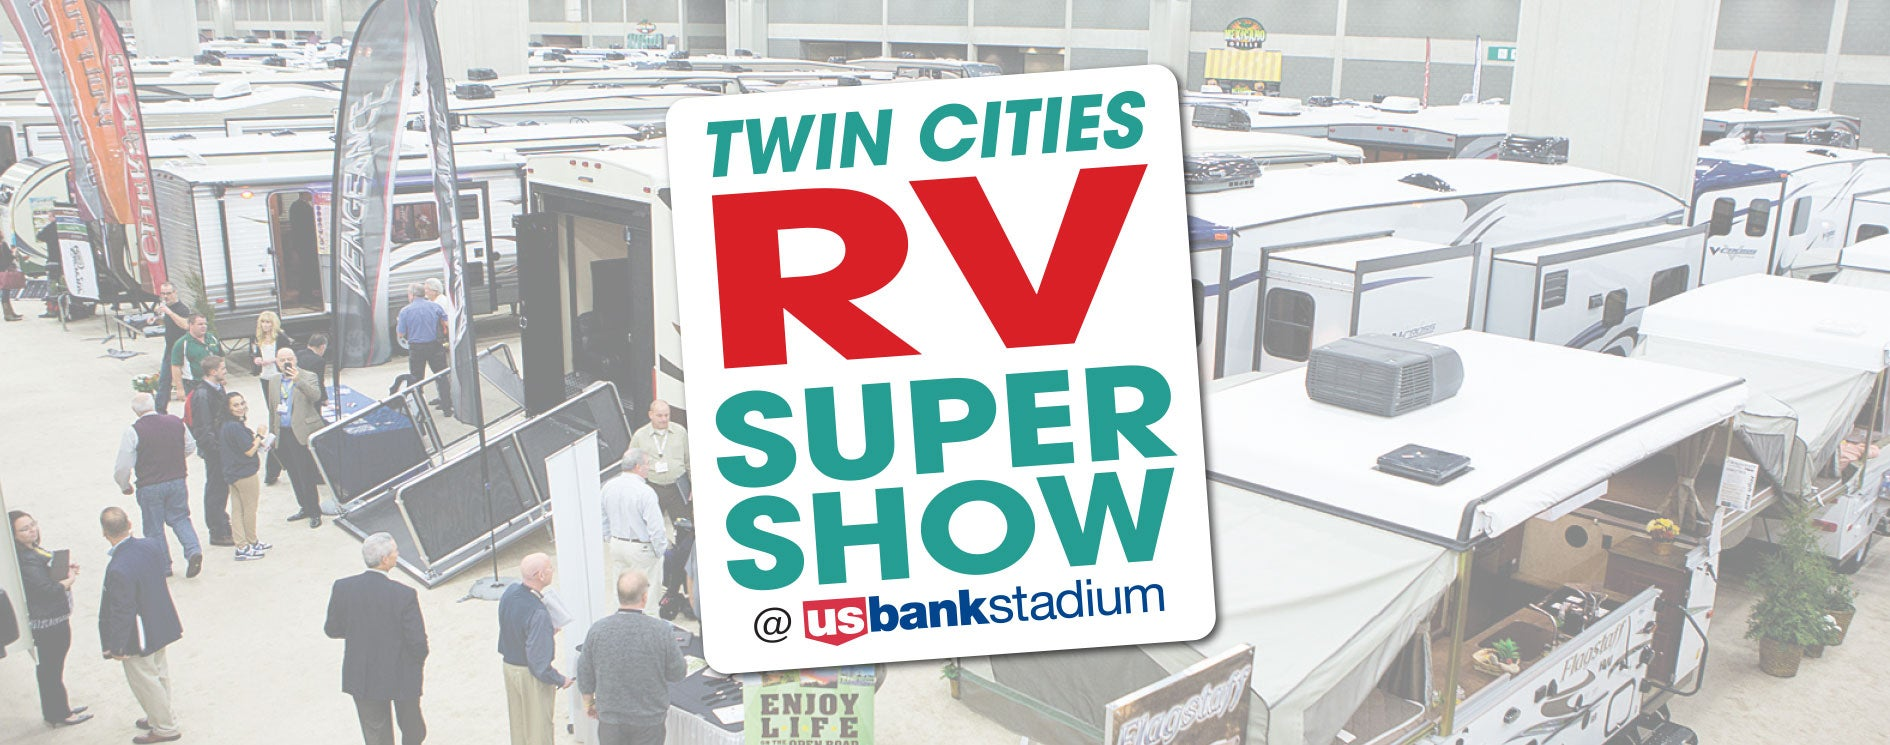 Metro RV Dealers Twin Cities RV Super Show